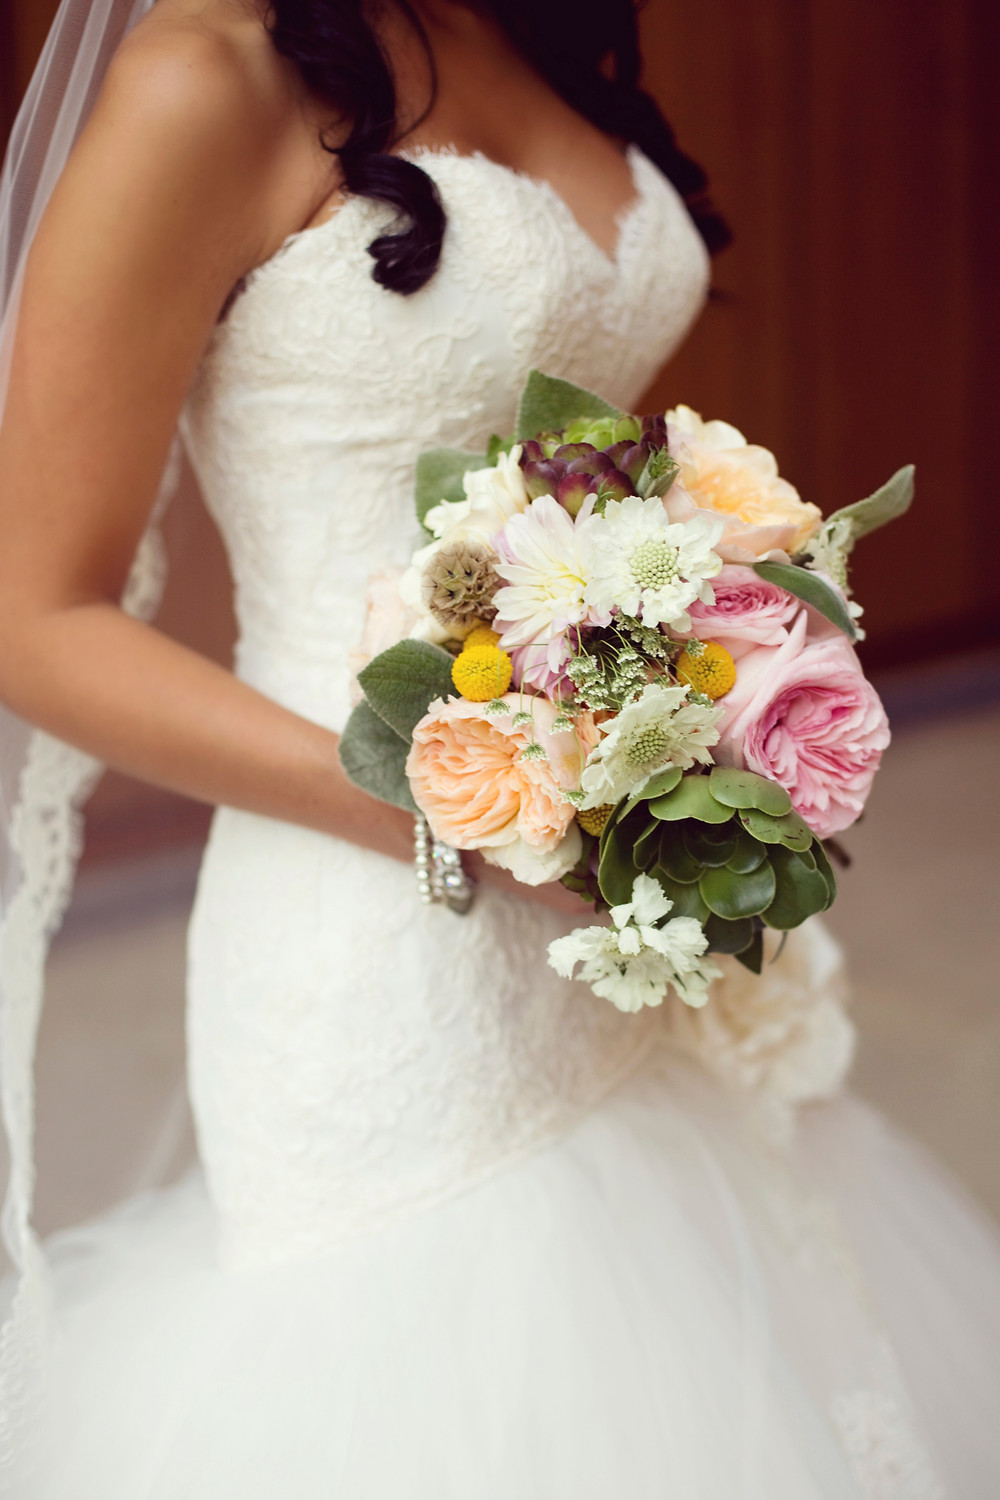 A bride wearing a lace Lazaro wedding dress is holding a large bouquet of romantic garden flowers on her wedding day.